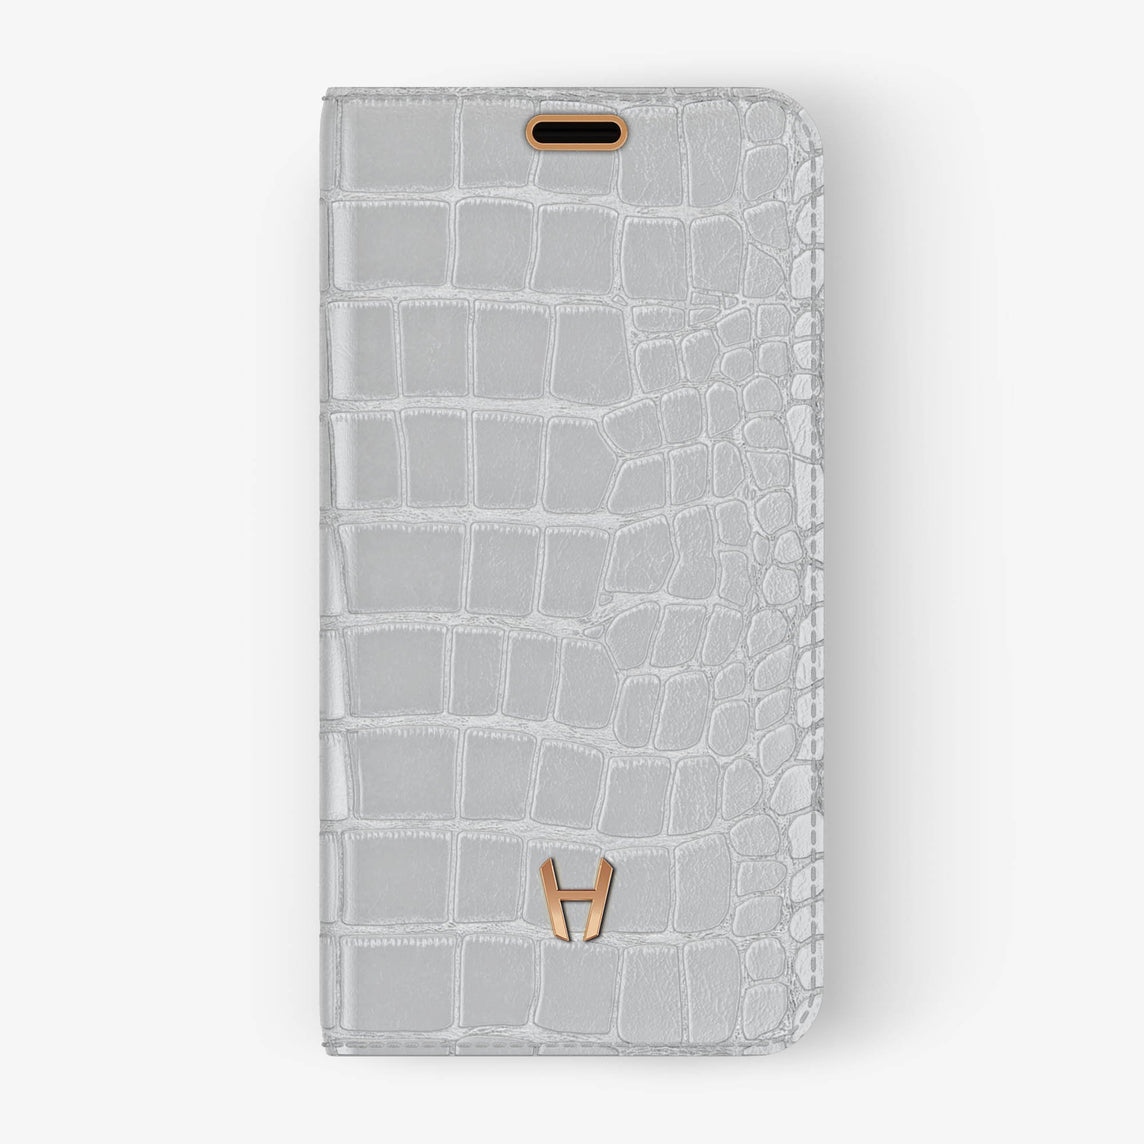 Alligator [iPhone Folio Case] [model:iphone-xr-case] [colour:white] [finishing:rose-gold]